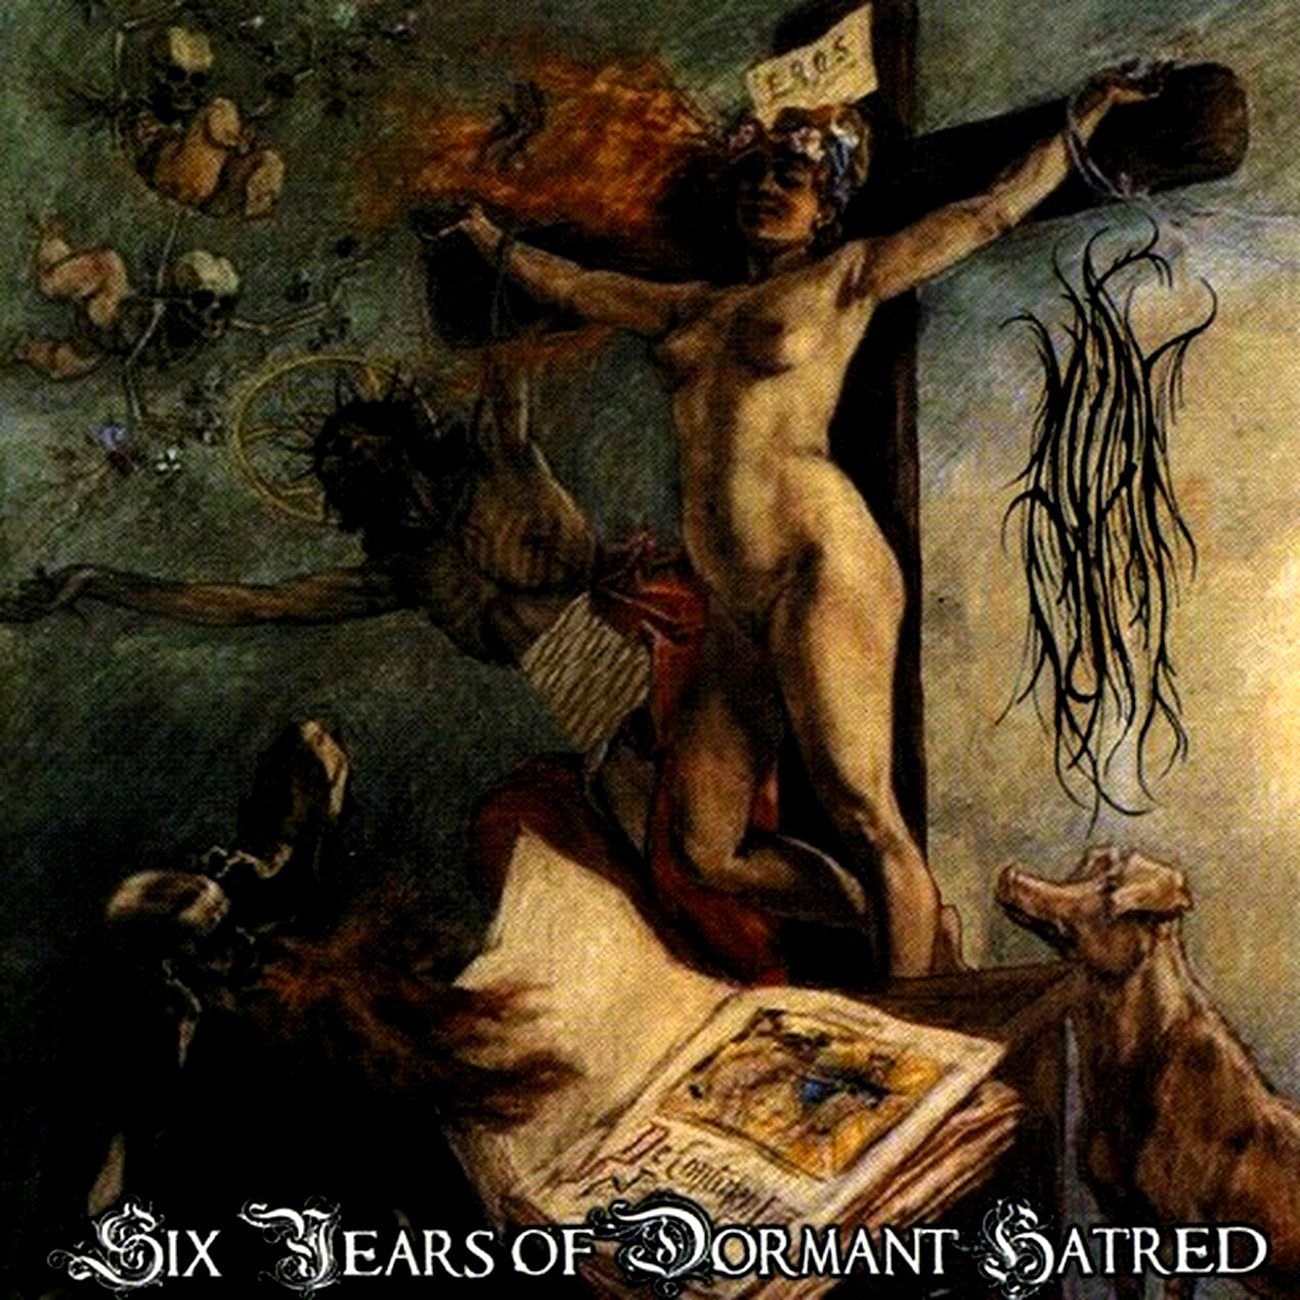 Best Lebanese Black Metal album: 'Ayat - Six Years of Dormant Hatred'